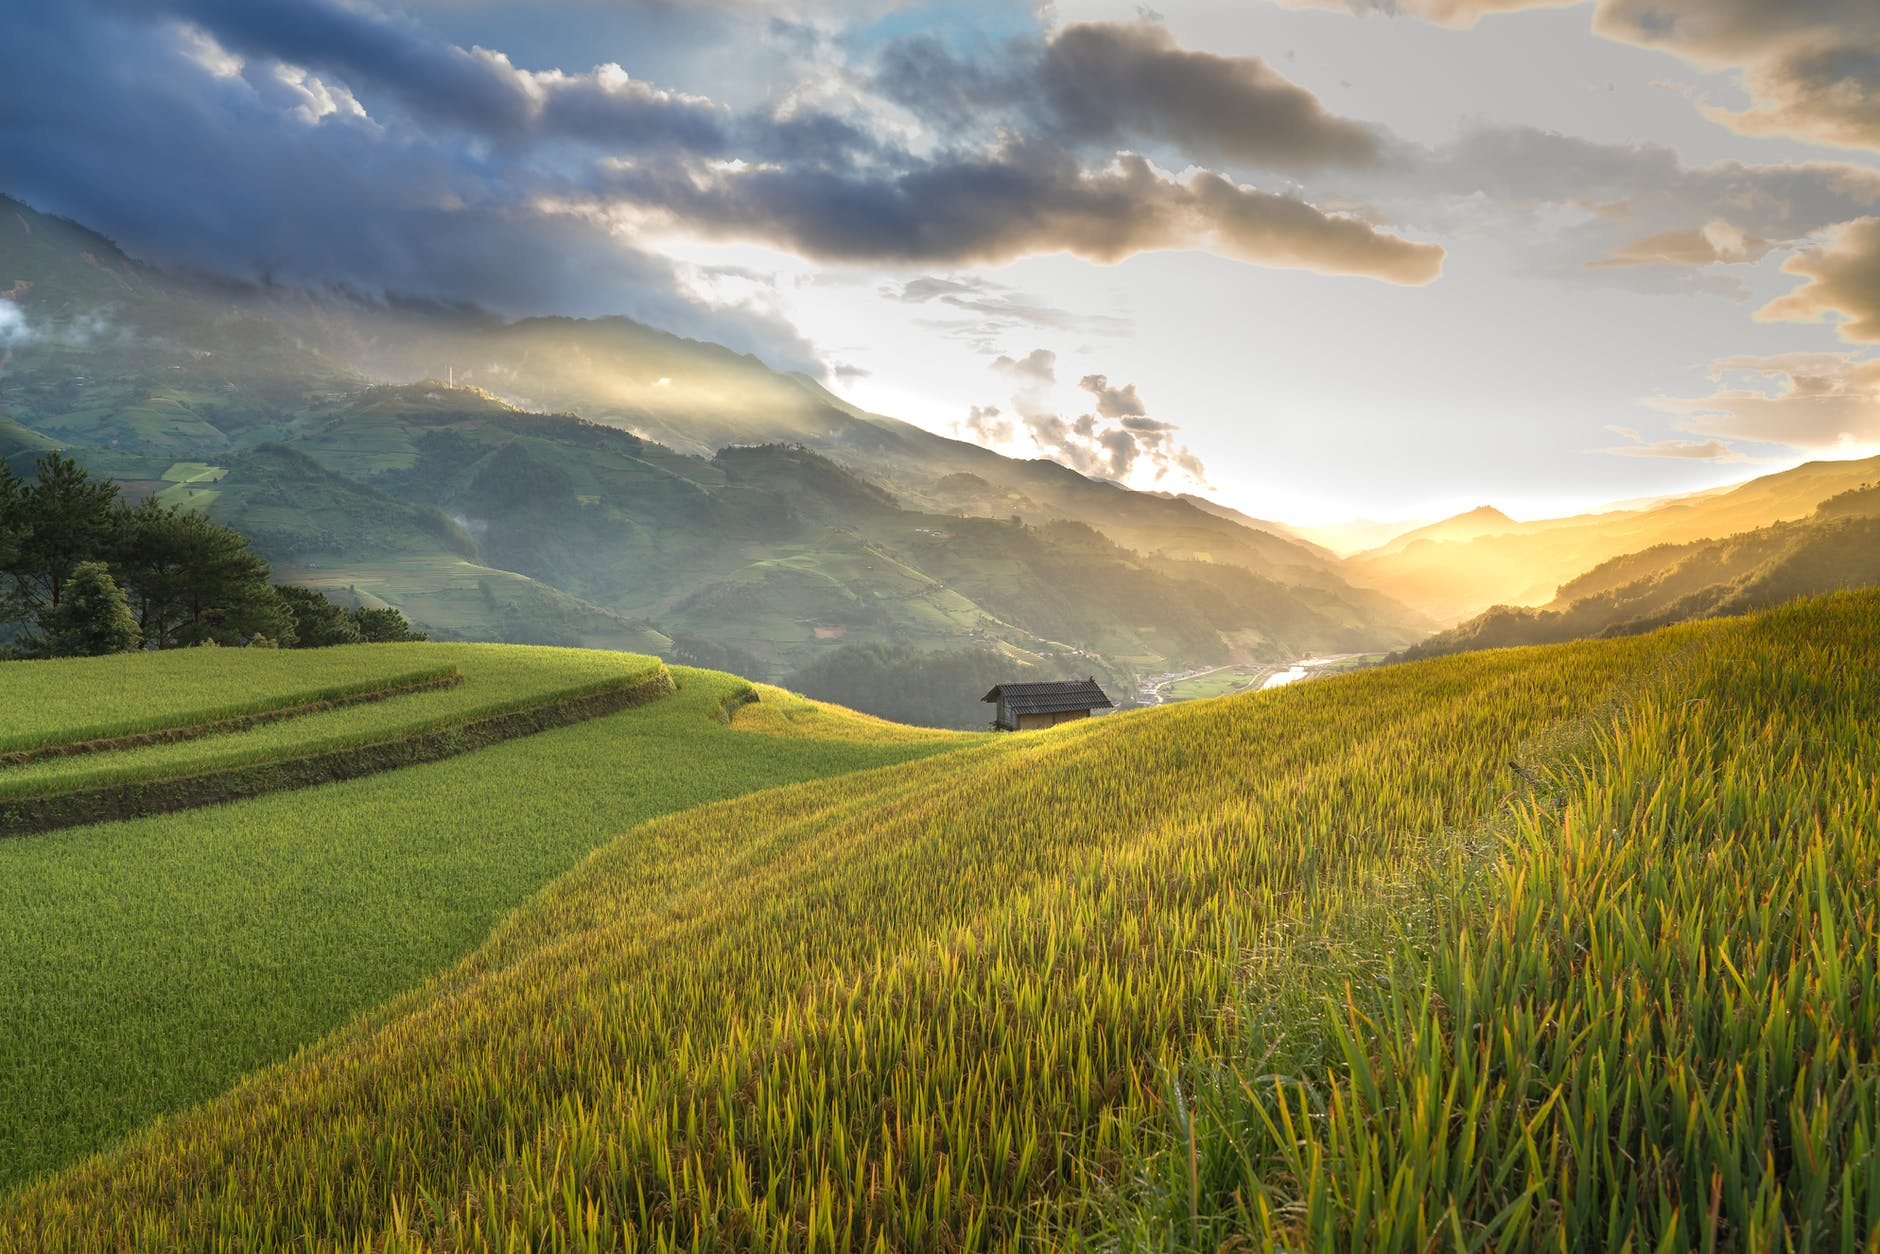 Rice field during golden hour